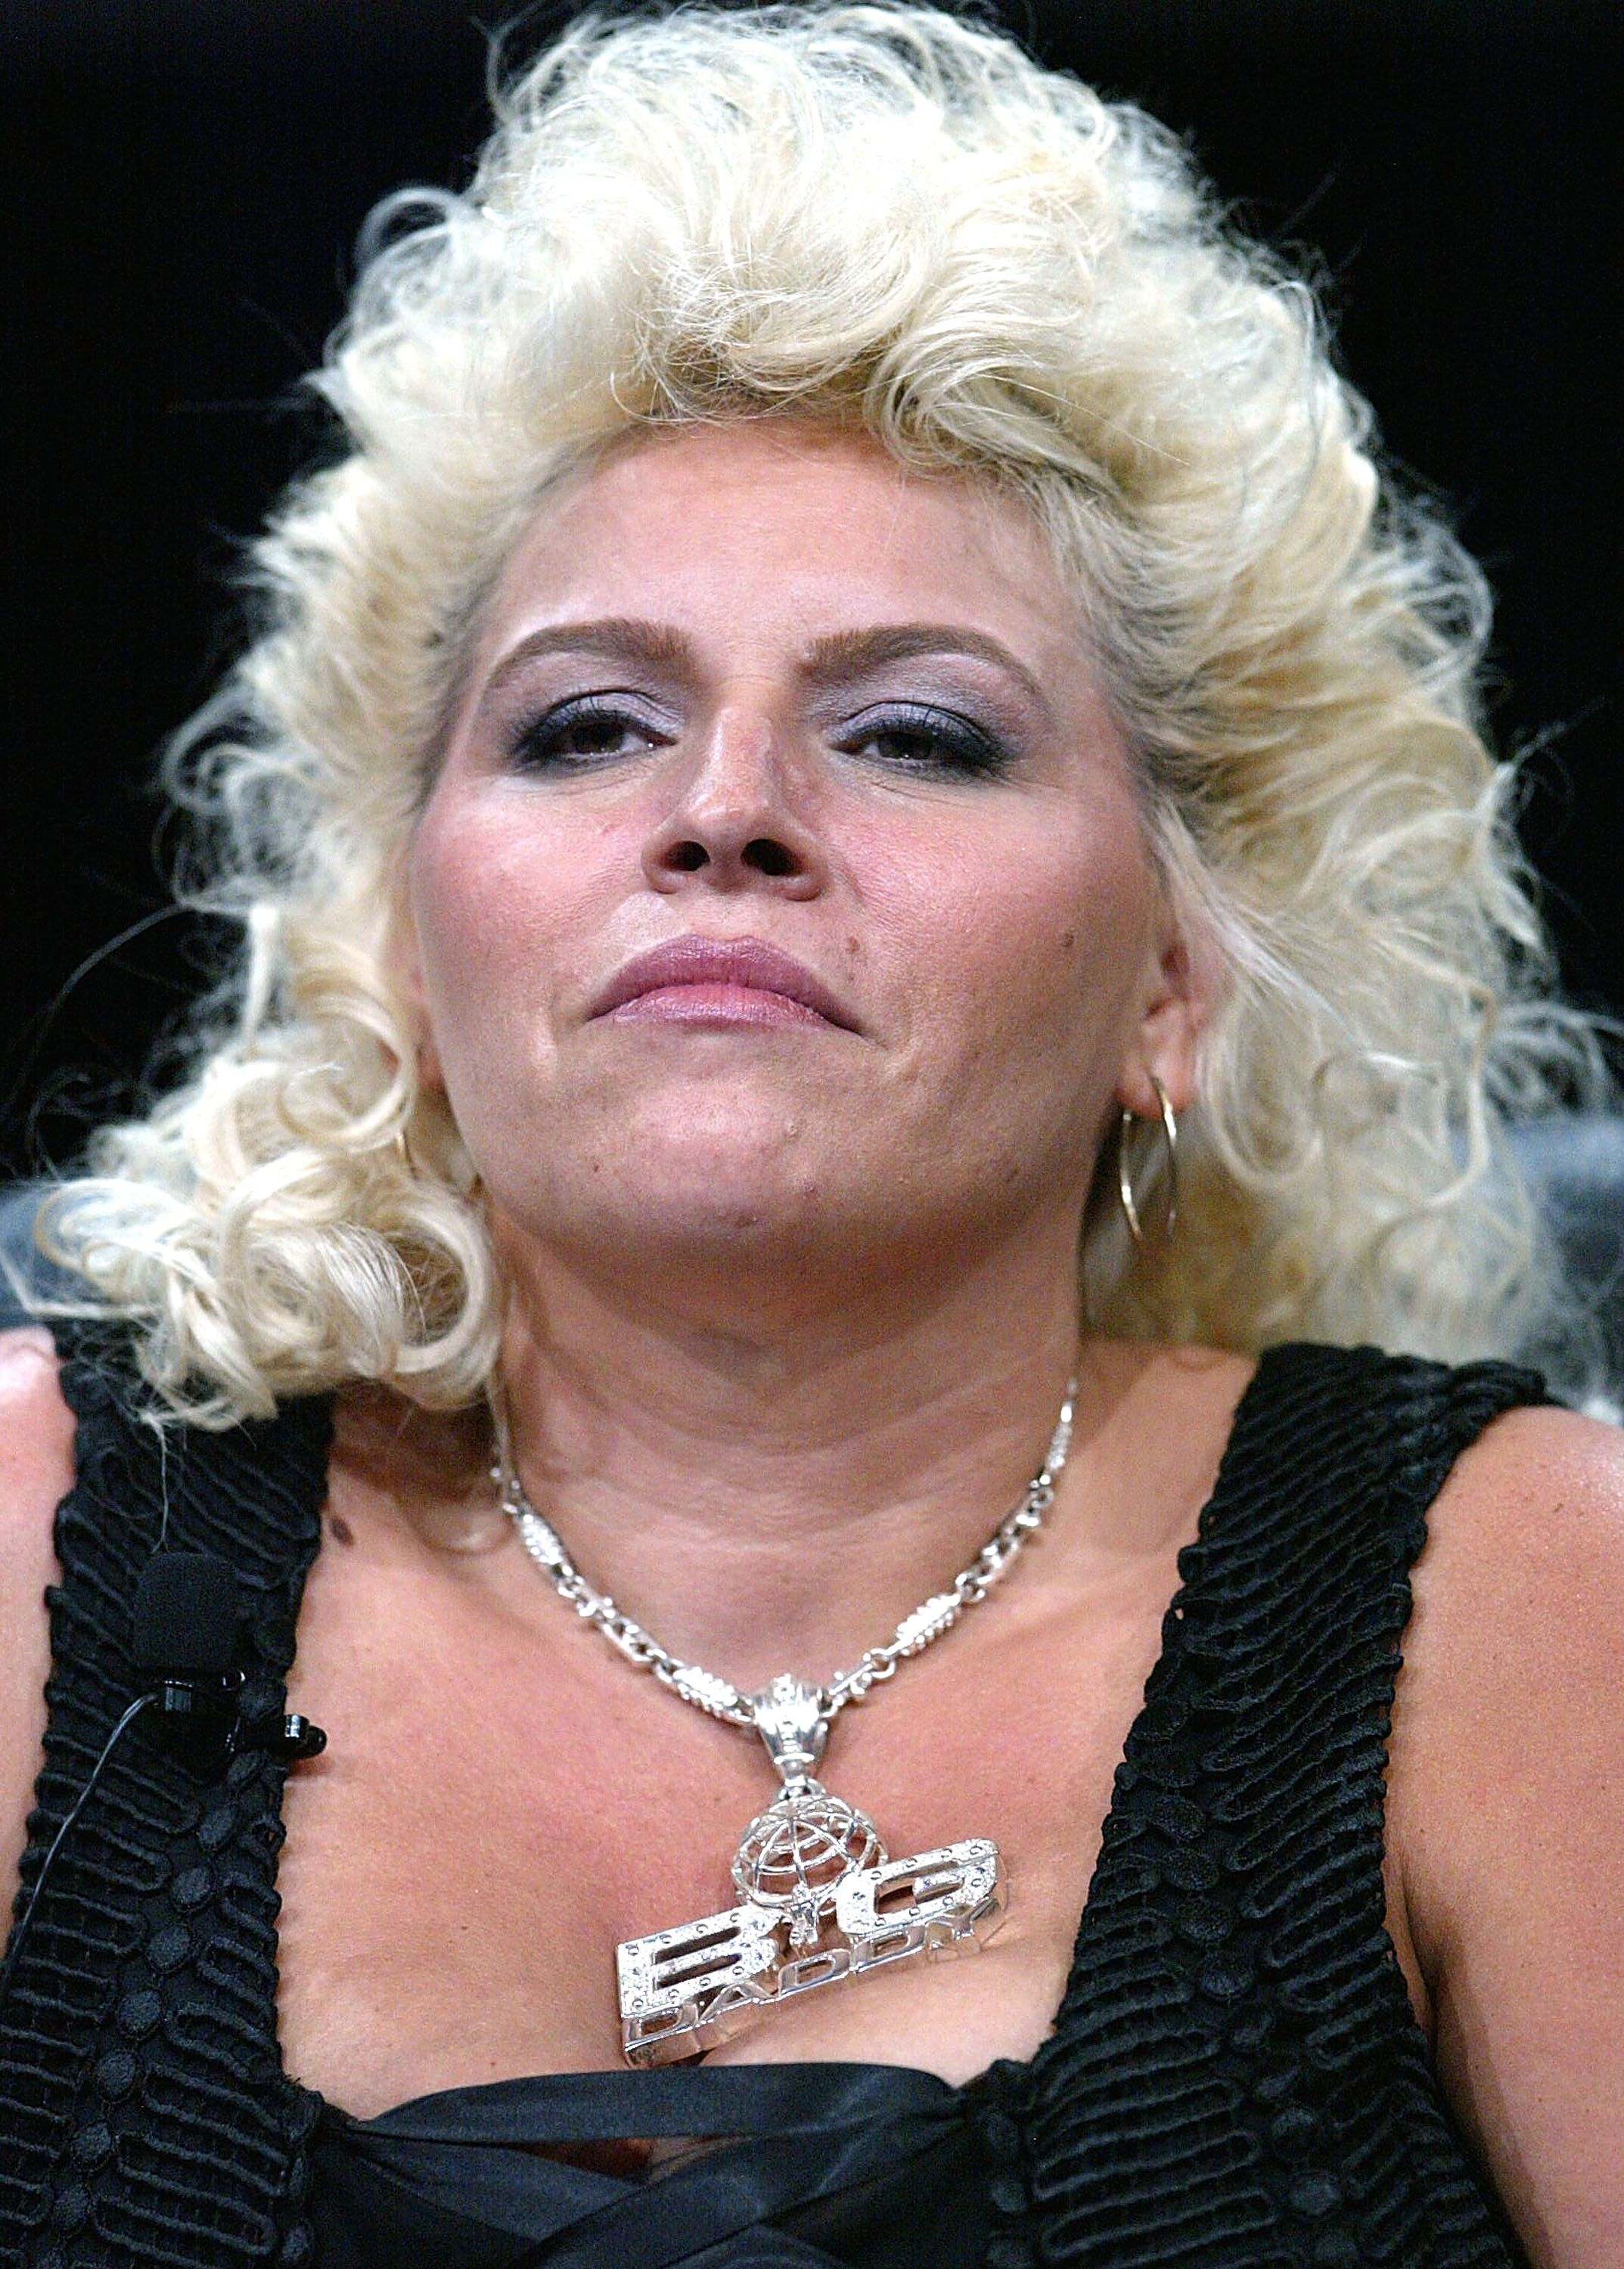 Beth Chapman. Image Credit: Getty Images